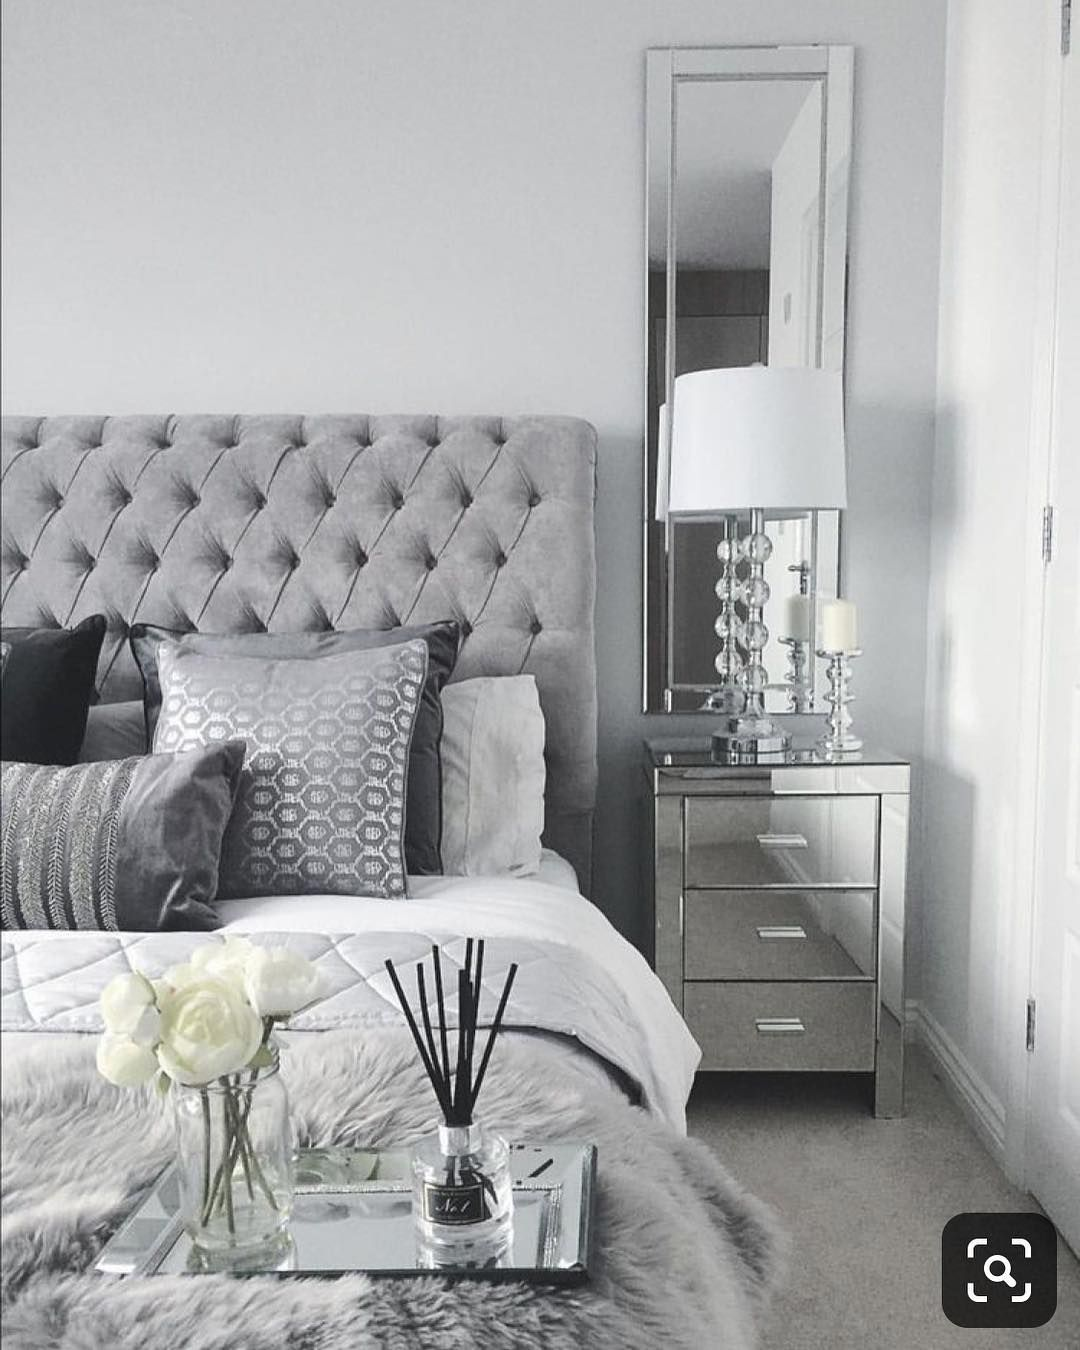 New The 10 Best Home Decor With Pictures Pinterest Is Always My Go To App When Im Grey Bedroom Decor Mirrored Bedroom Furniture White And Silver Bedroom